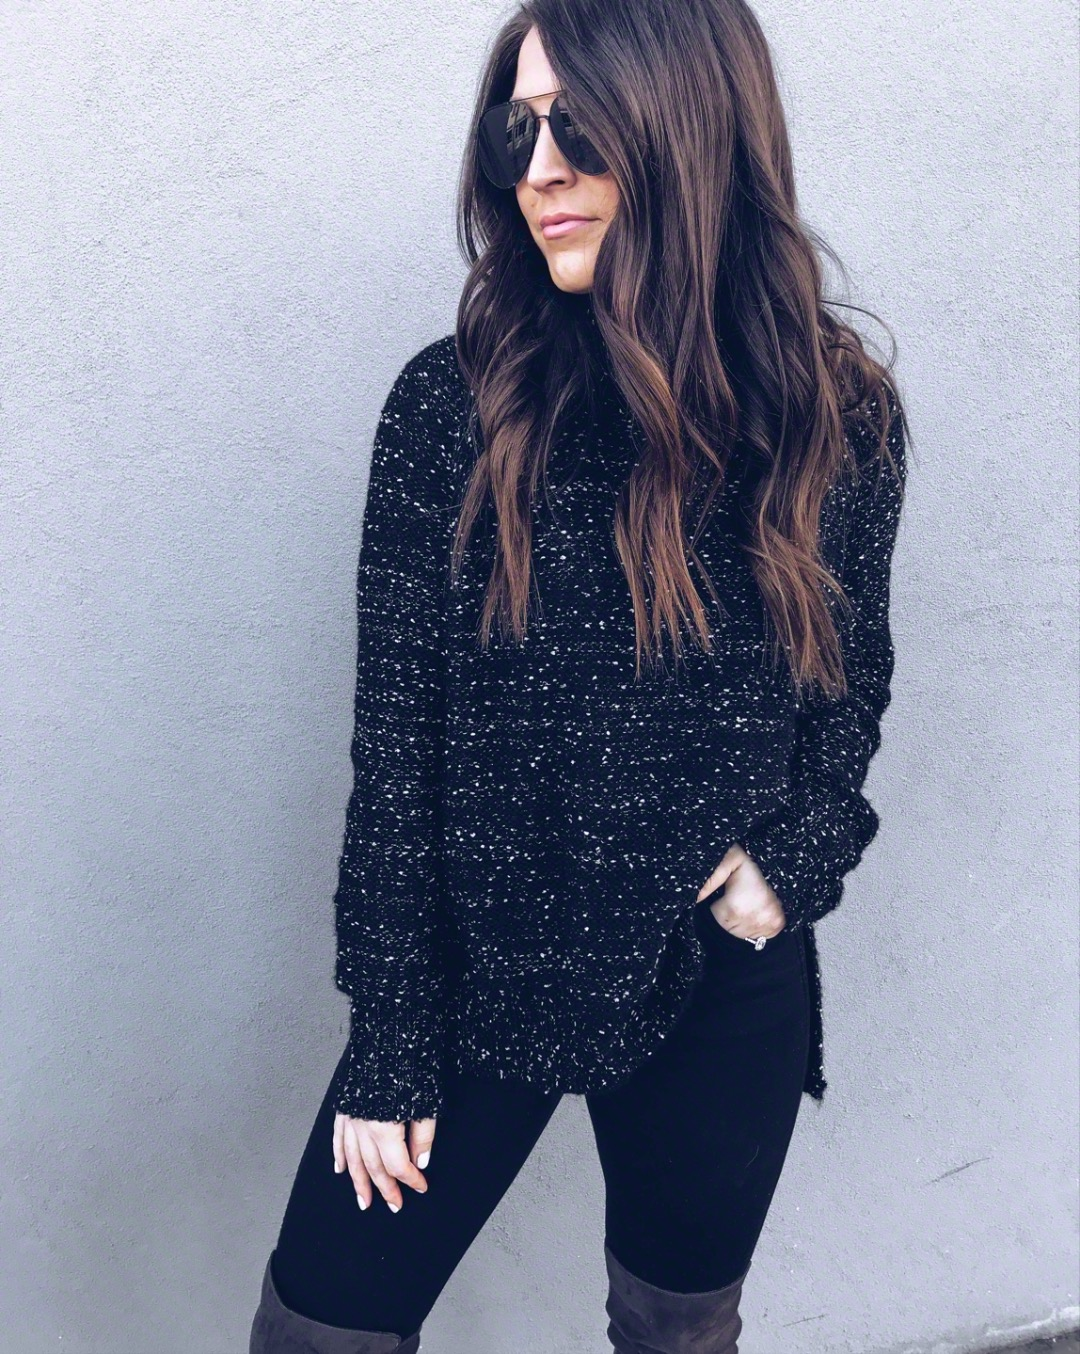 Must Have White Top for Spring | Pine Barren Beauty | winter outfit idea, winter fashion, black + white turtleneck, black denim, over the knee boots, hair goals